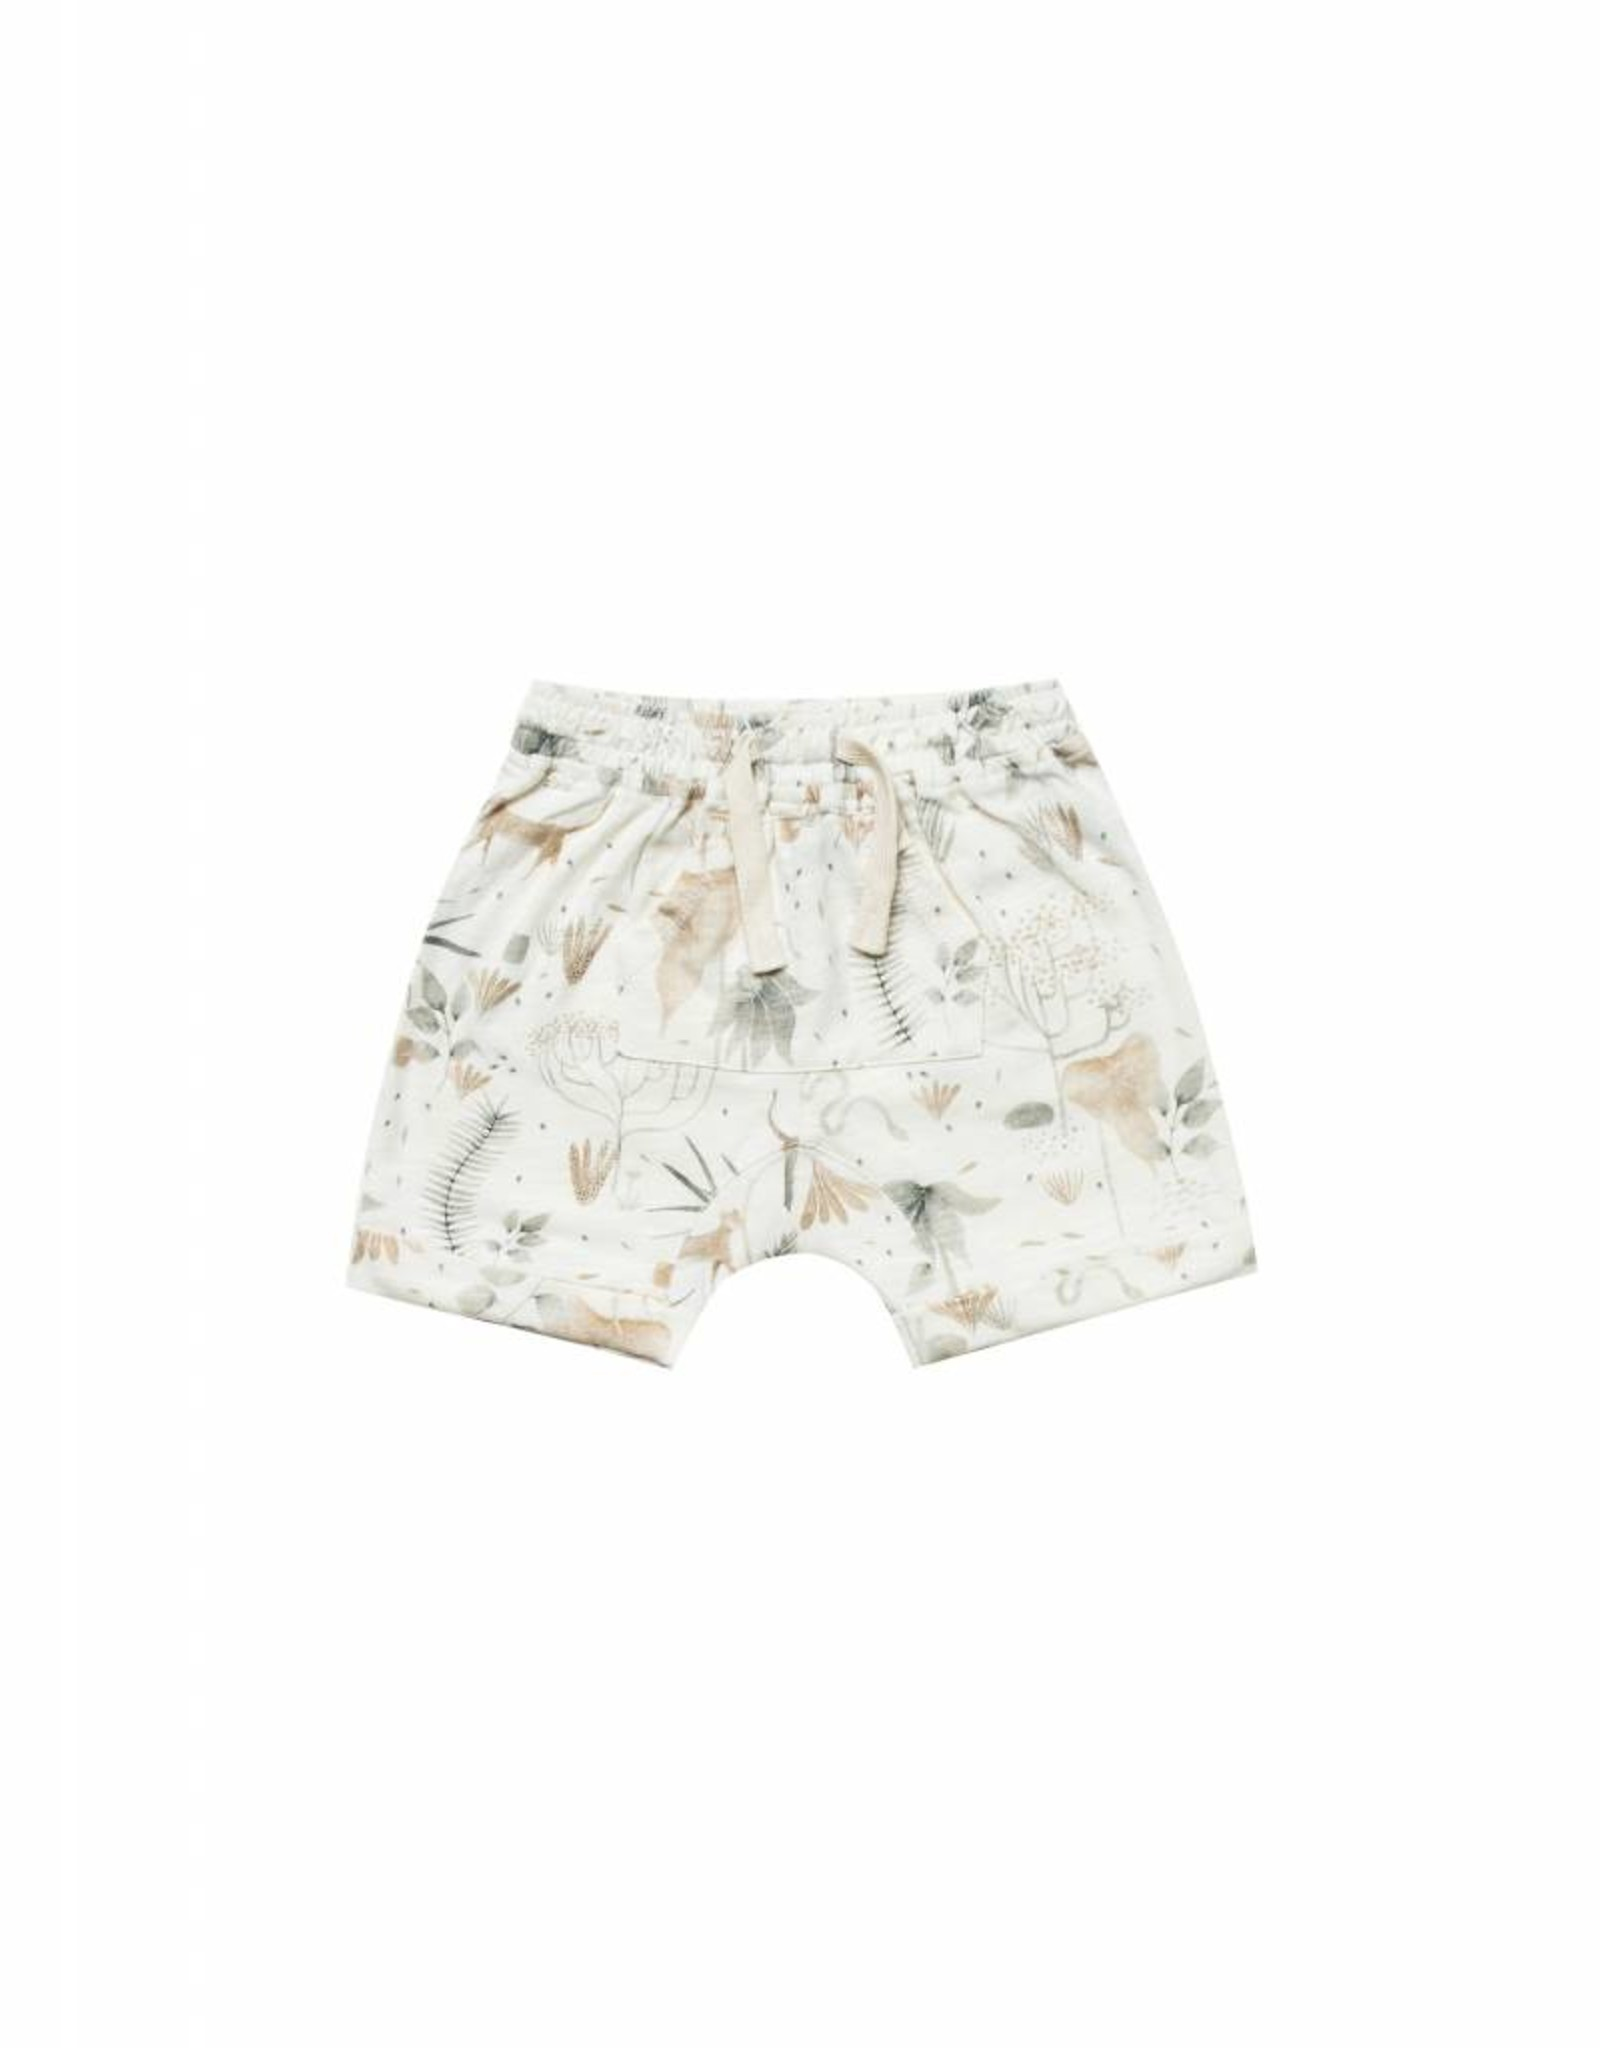 Rylee and Cru front pouch short- jungle